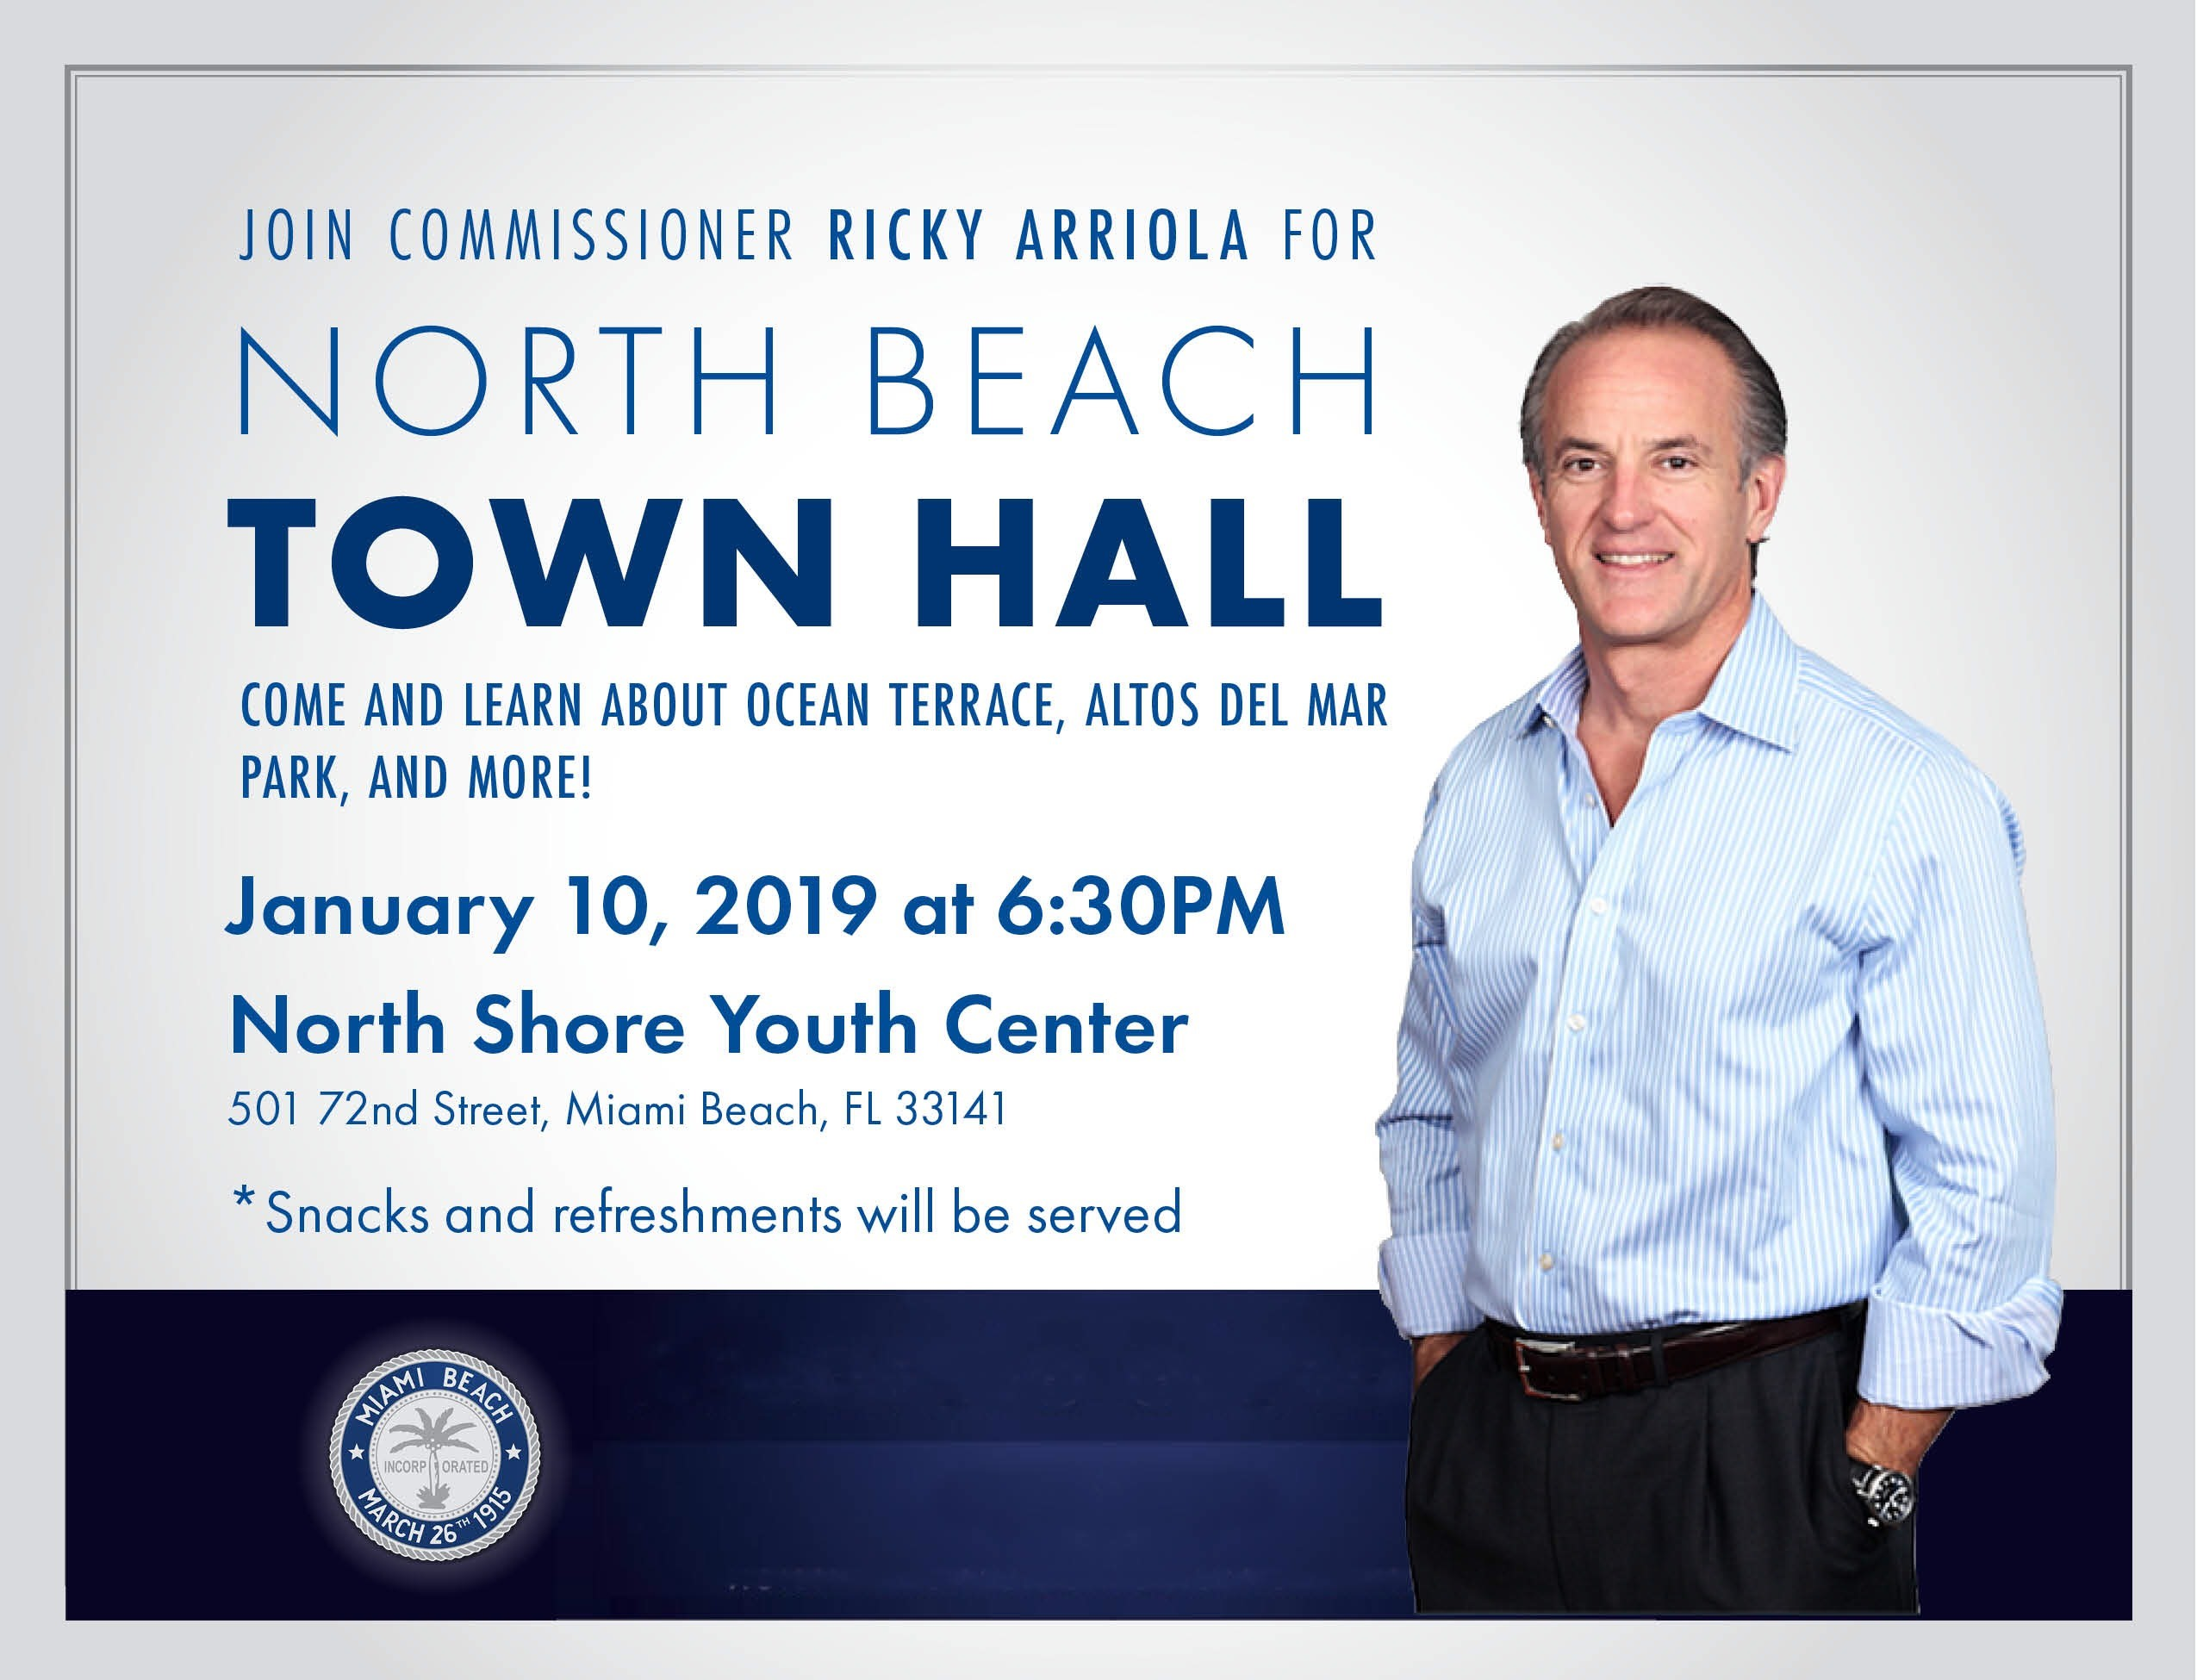 North Beach Town Hall with Commissioner Ricky Arriola